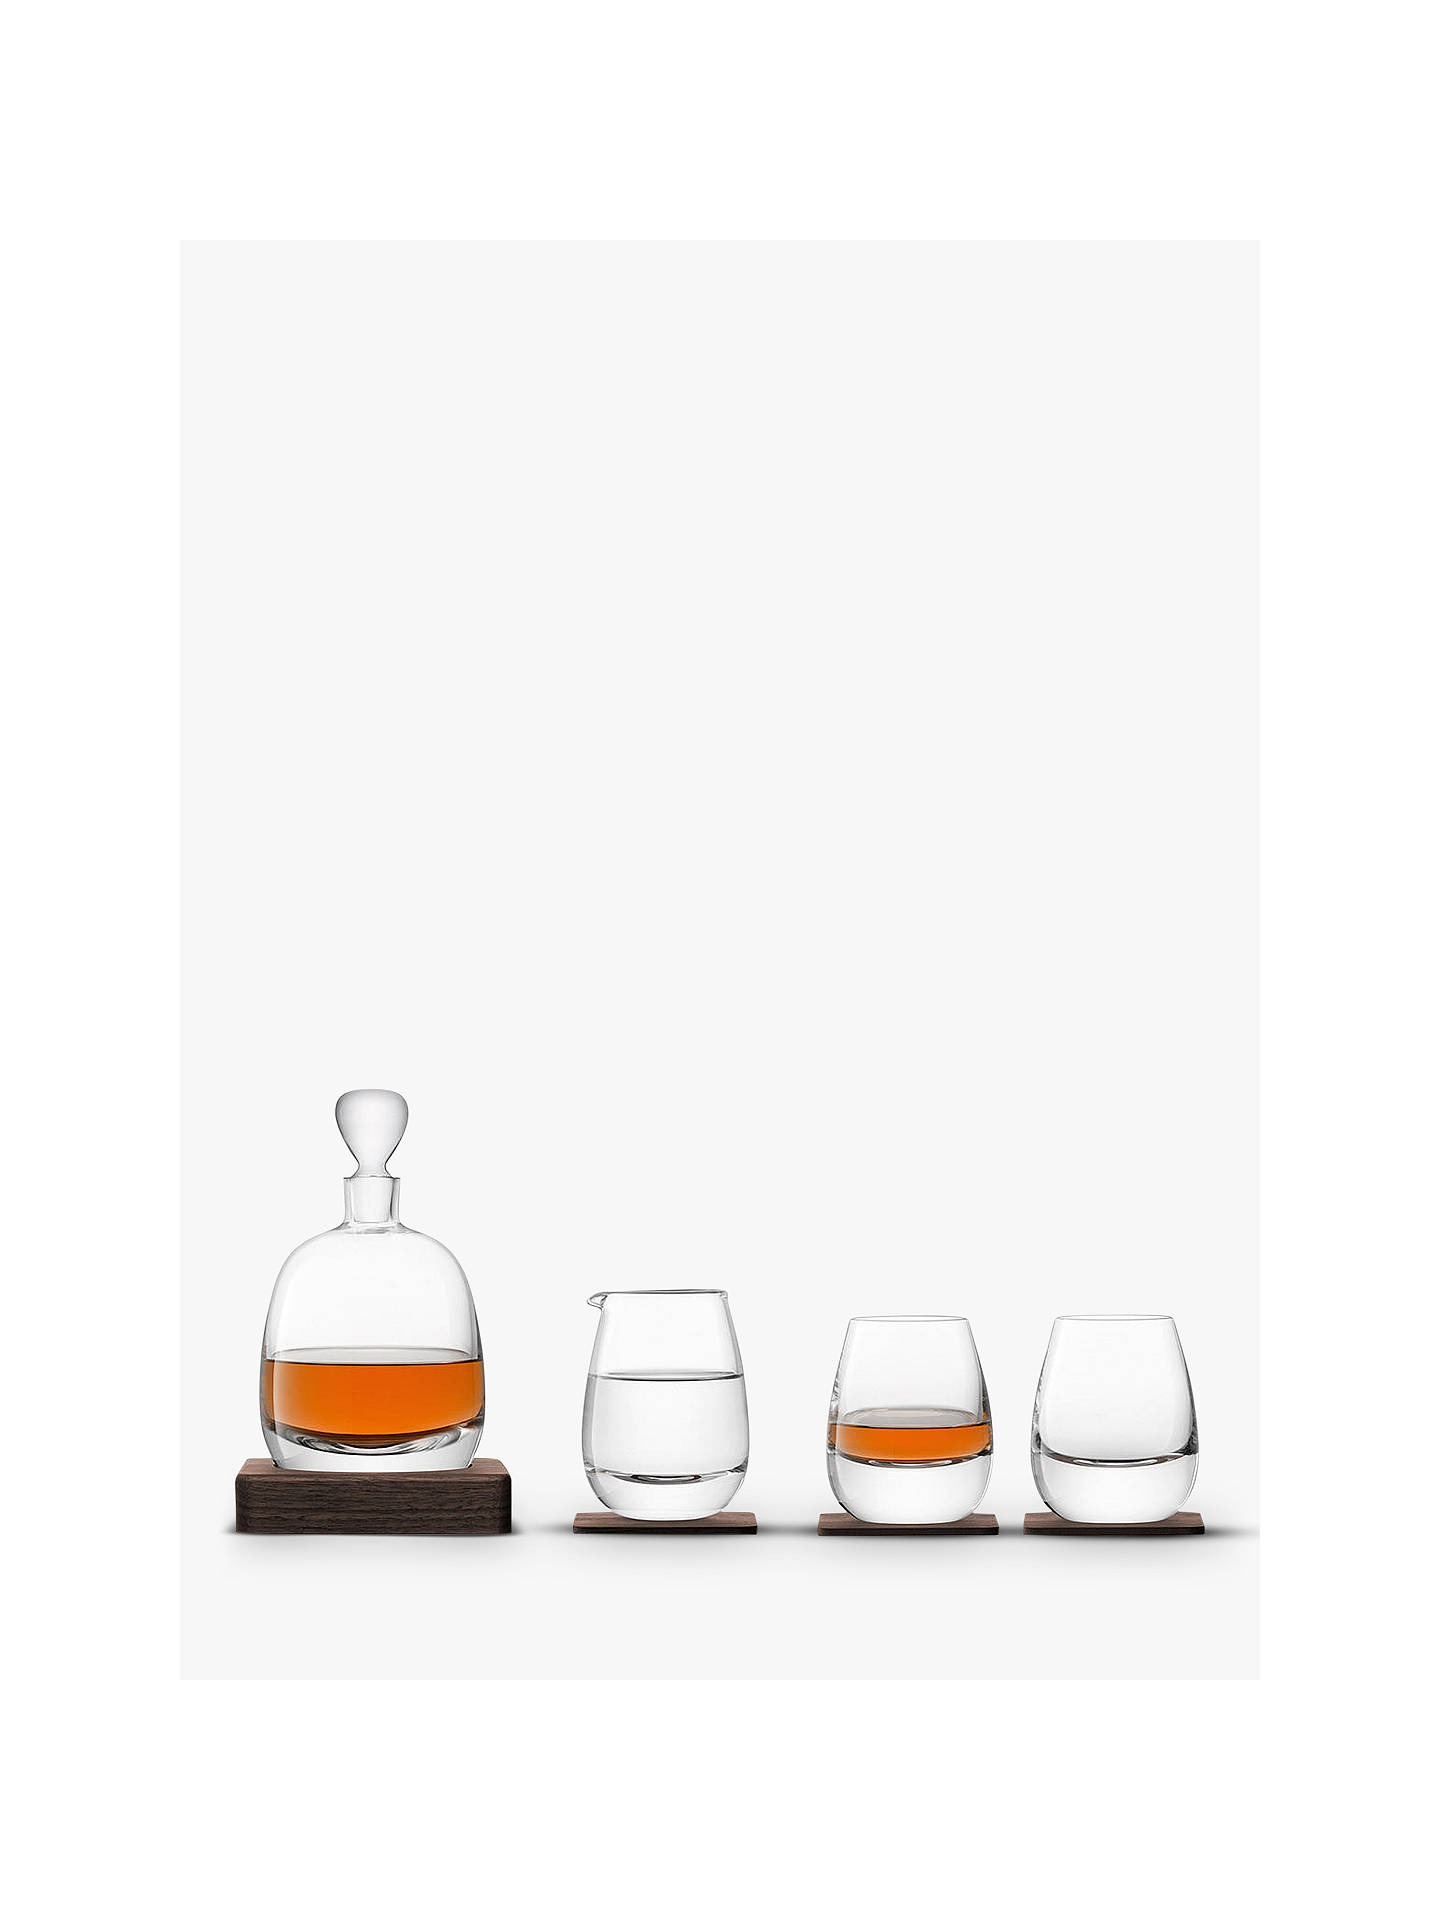 Buy LSA International Whisky Decanter & Glasses Gift Set, Set of 4 Online at johnlewis.com